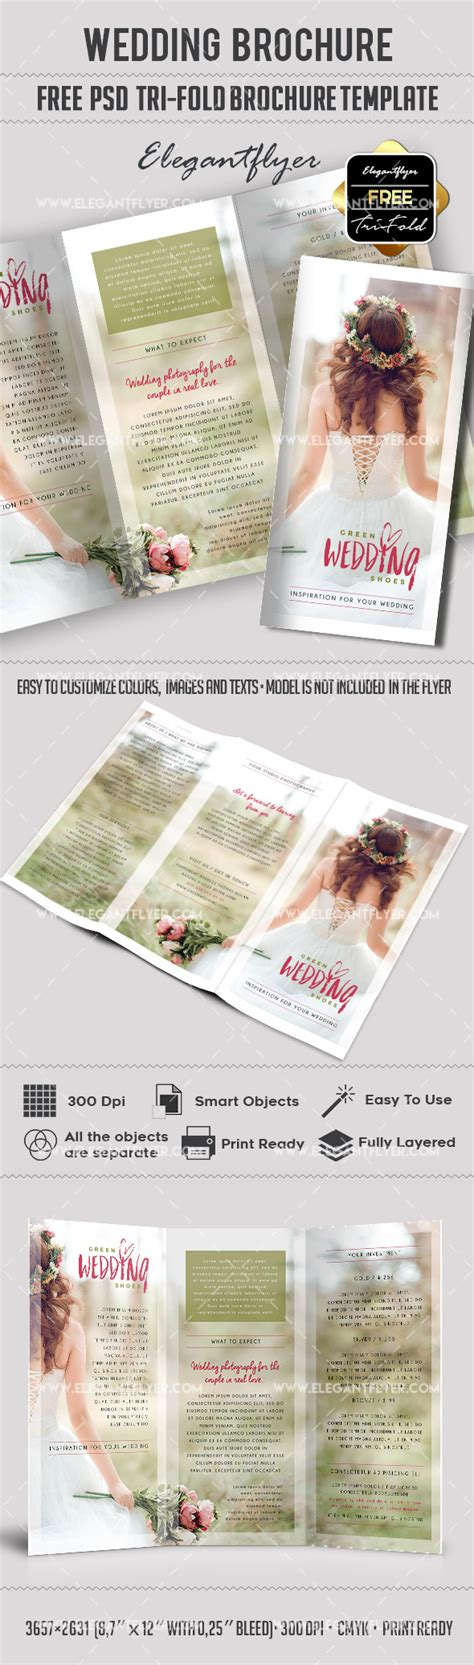 tri fold brochure templates for free wedding free tri fold psd brochure template by elegantflyer